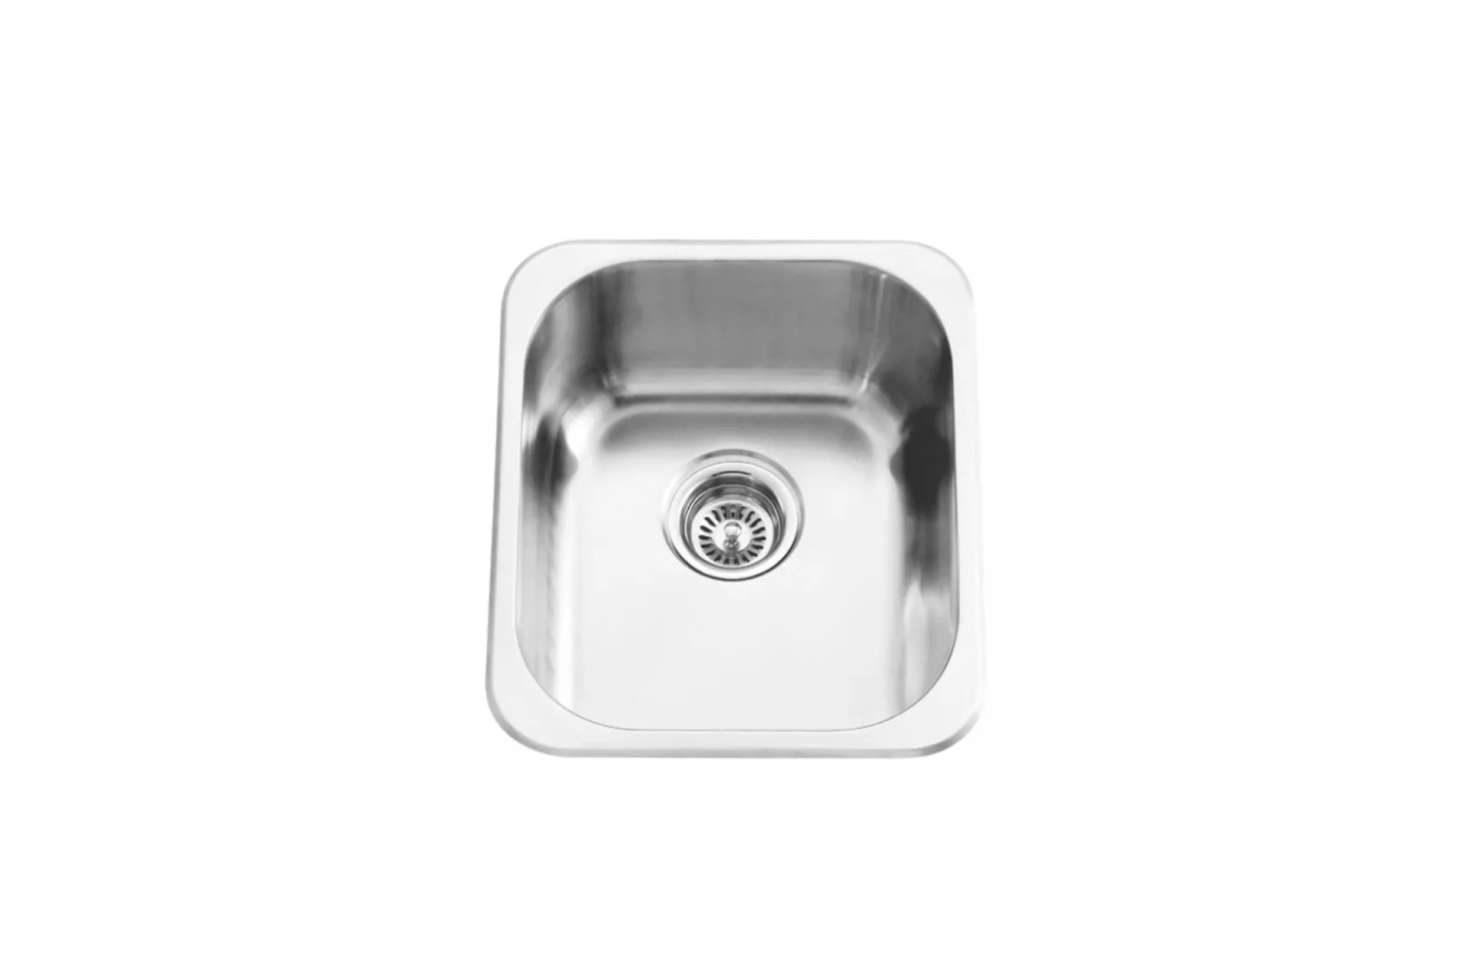 The simple and affordableSignature Hardware Stainless Steel Drop-in Bar Sink is $9.